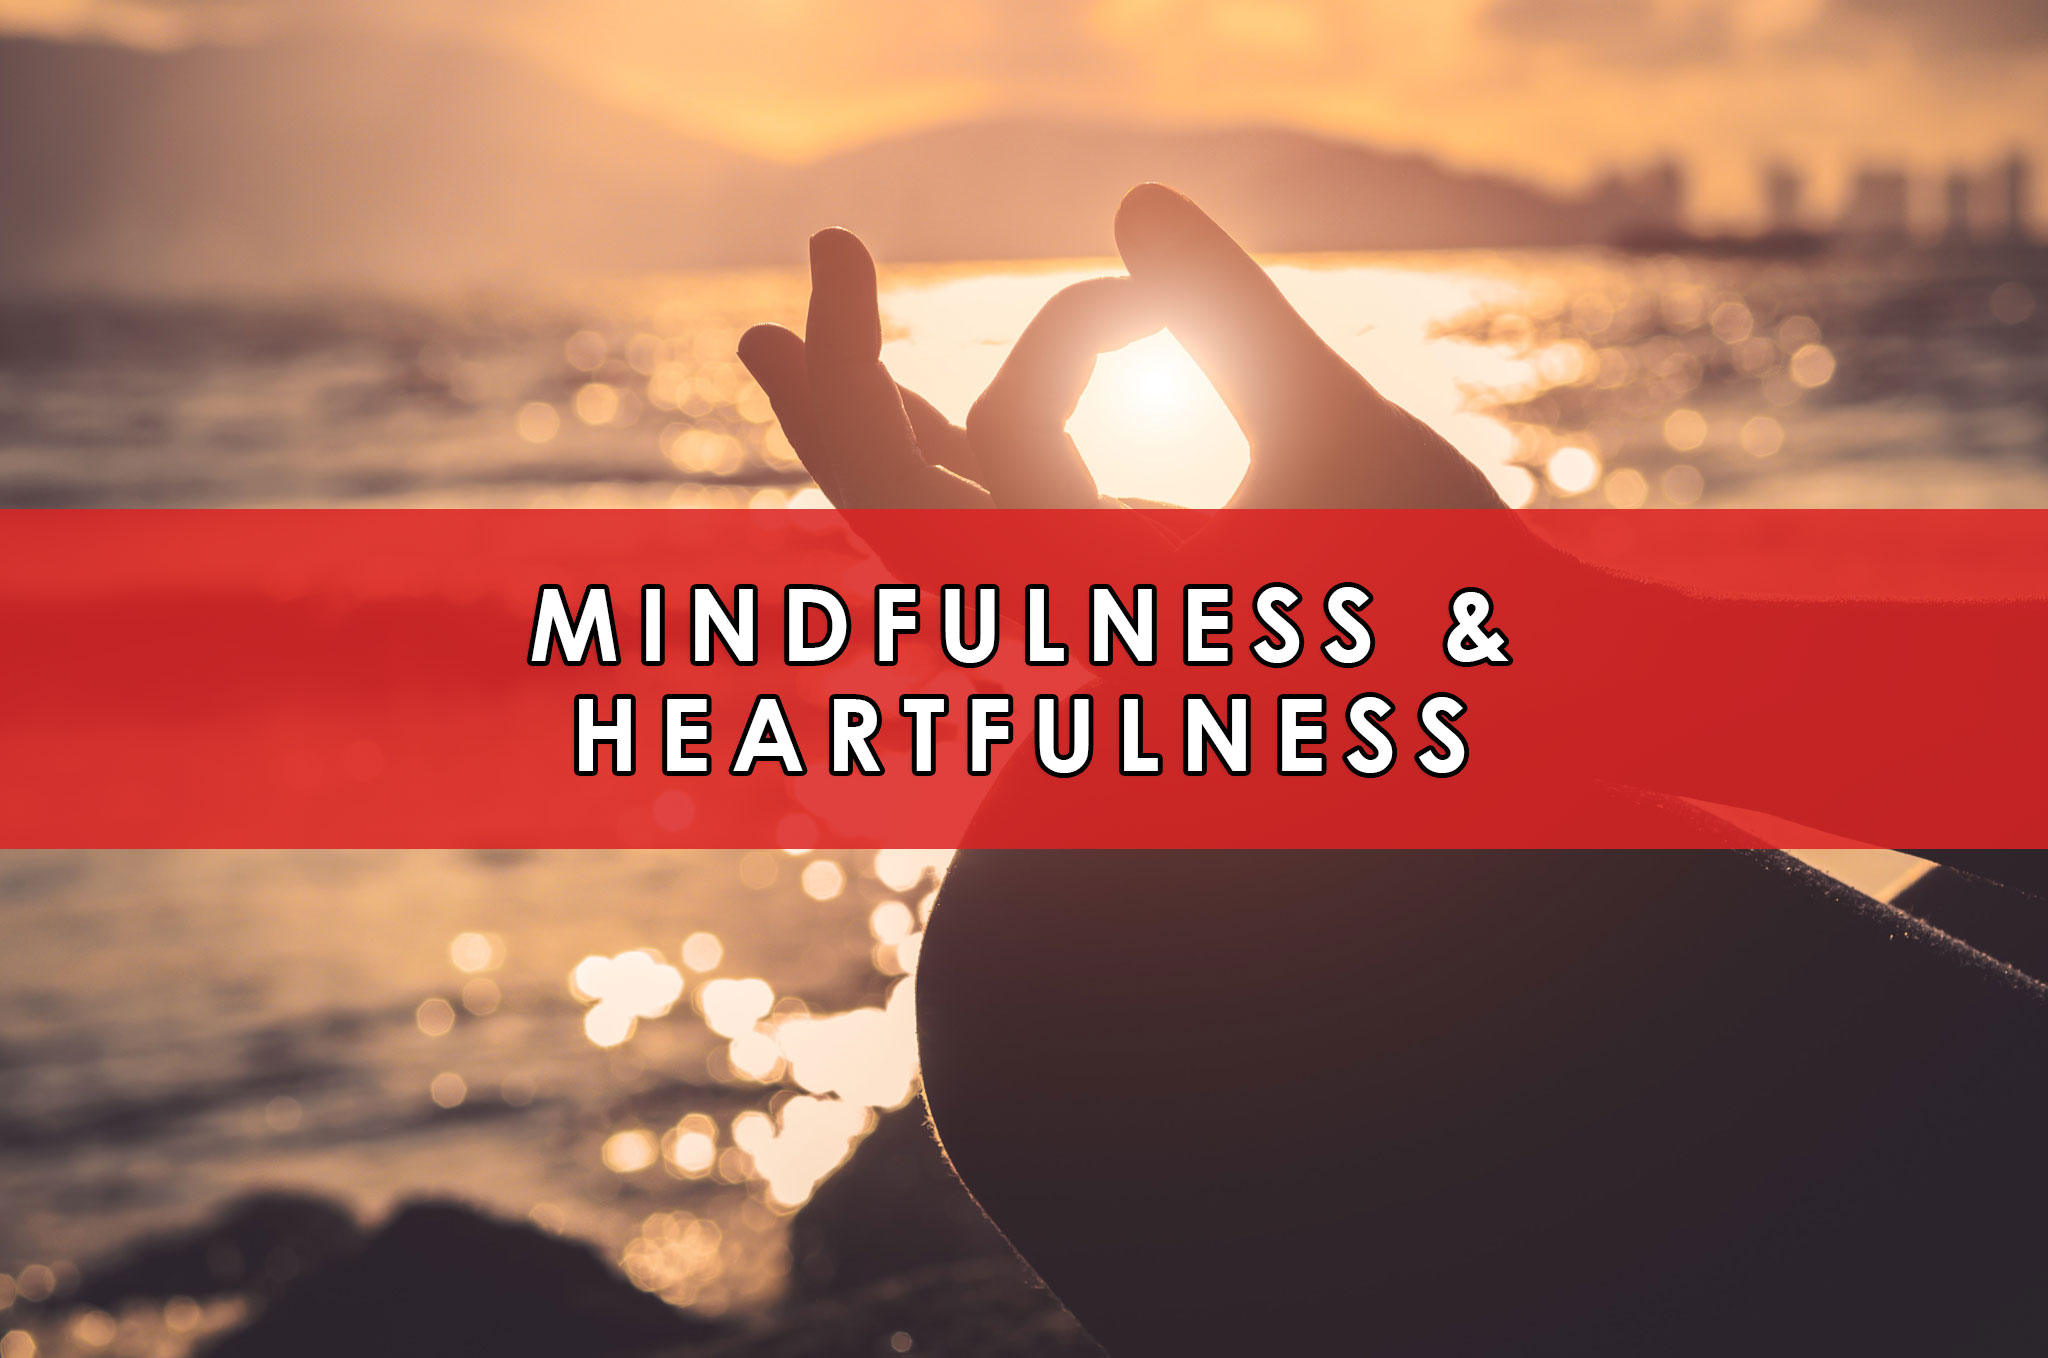 Mindfulness & Heartfulness | HeartFirst Education Core Value